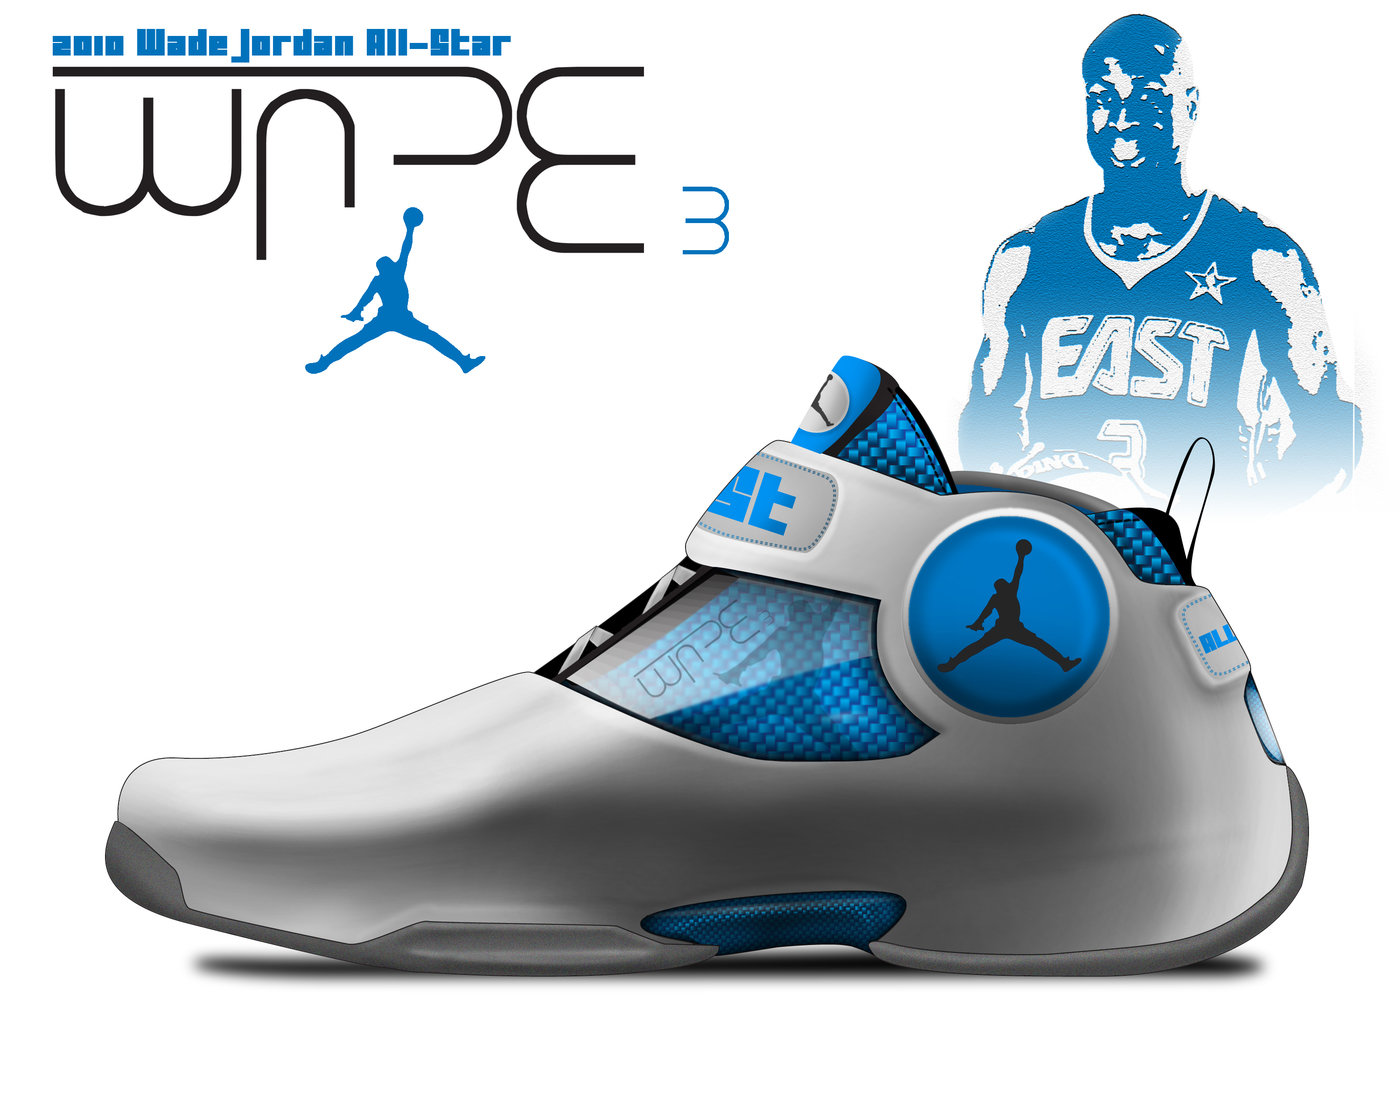 a9f41fcc75d1 Concept Shoes by Jamaal Galloway at Coroflot.com